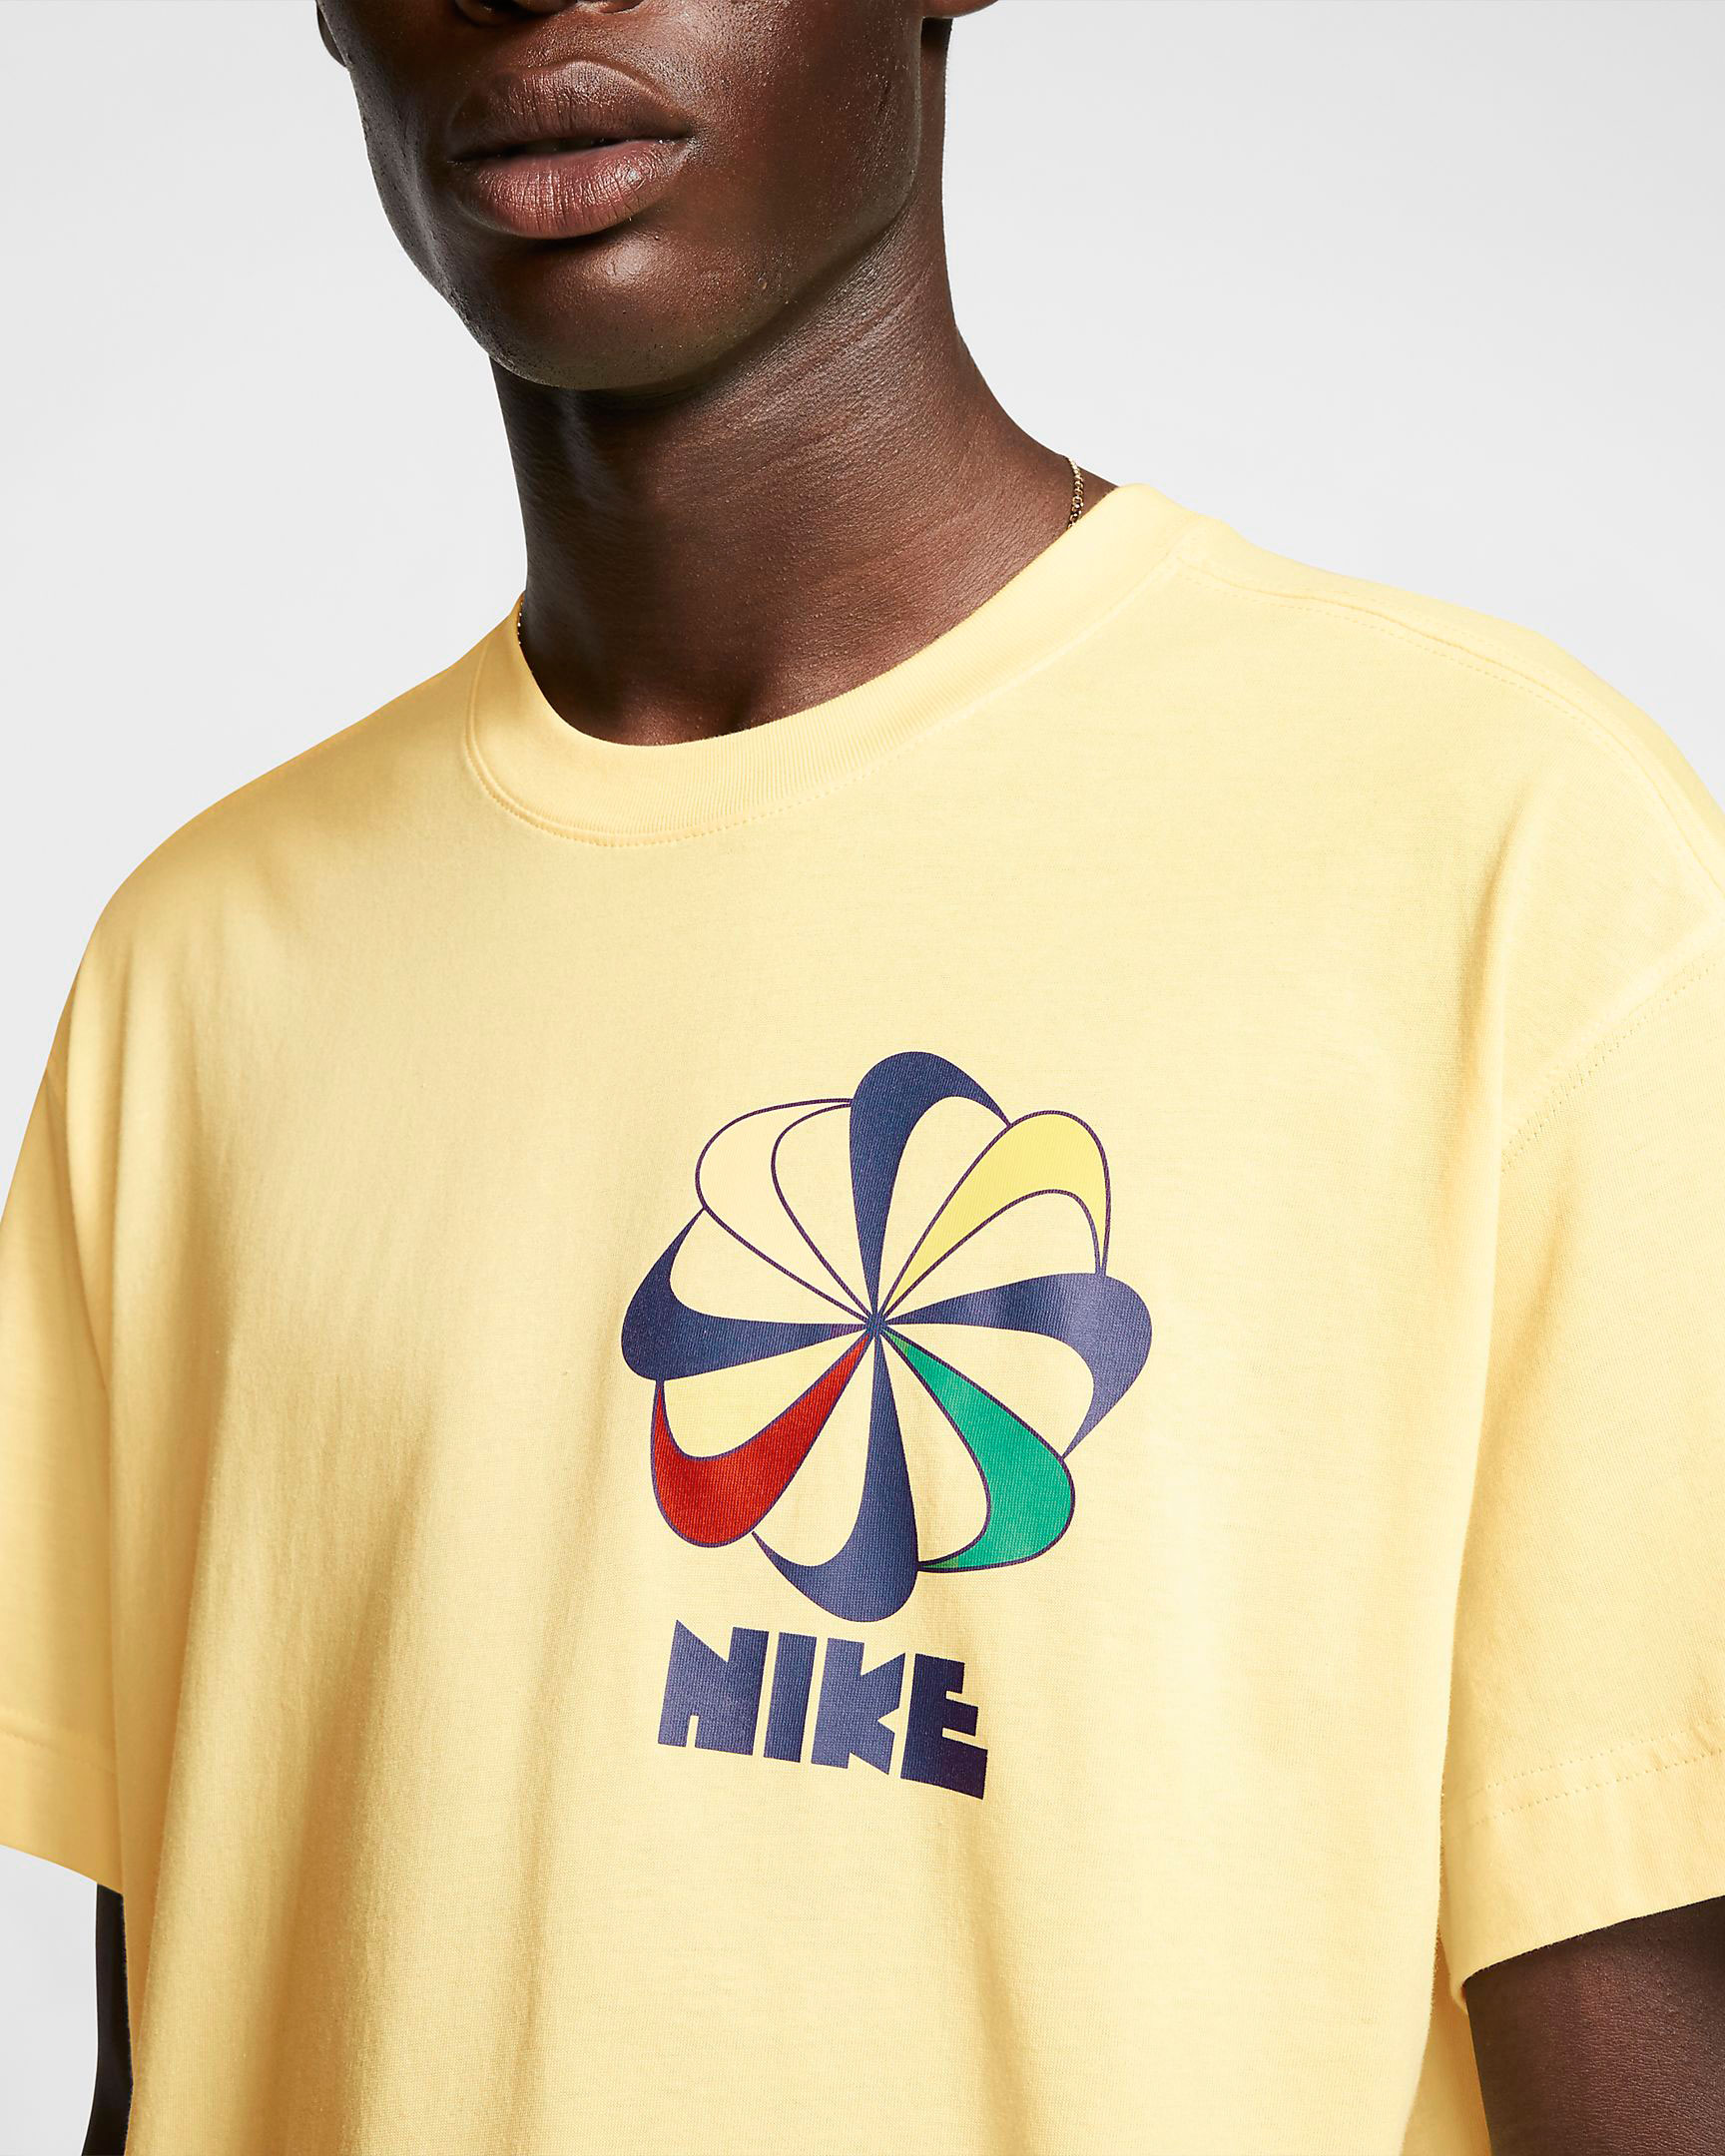 nike-sunburst-pinwheel-shirt-yellow-3